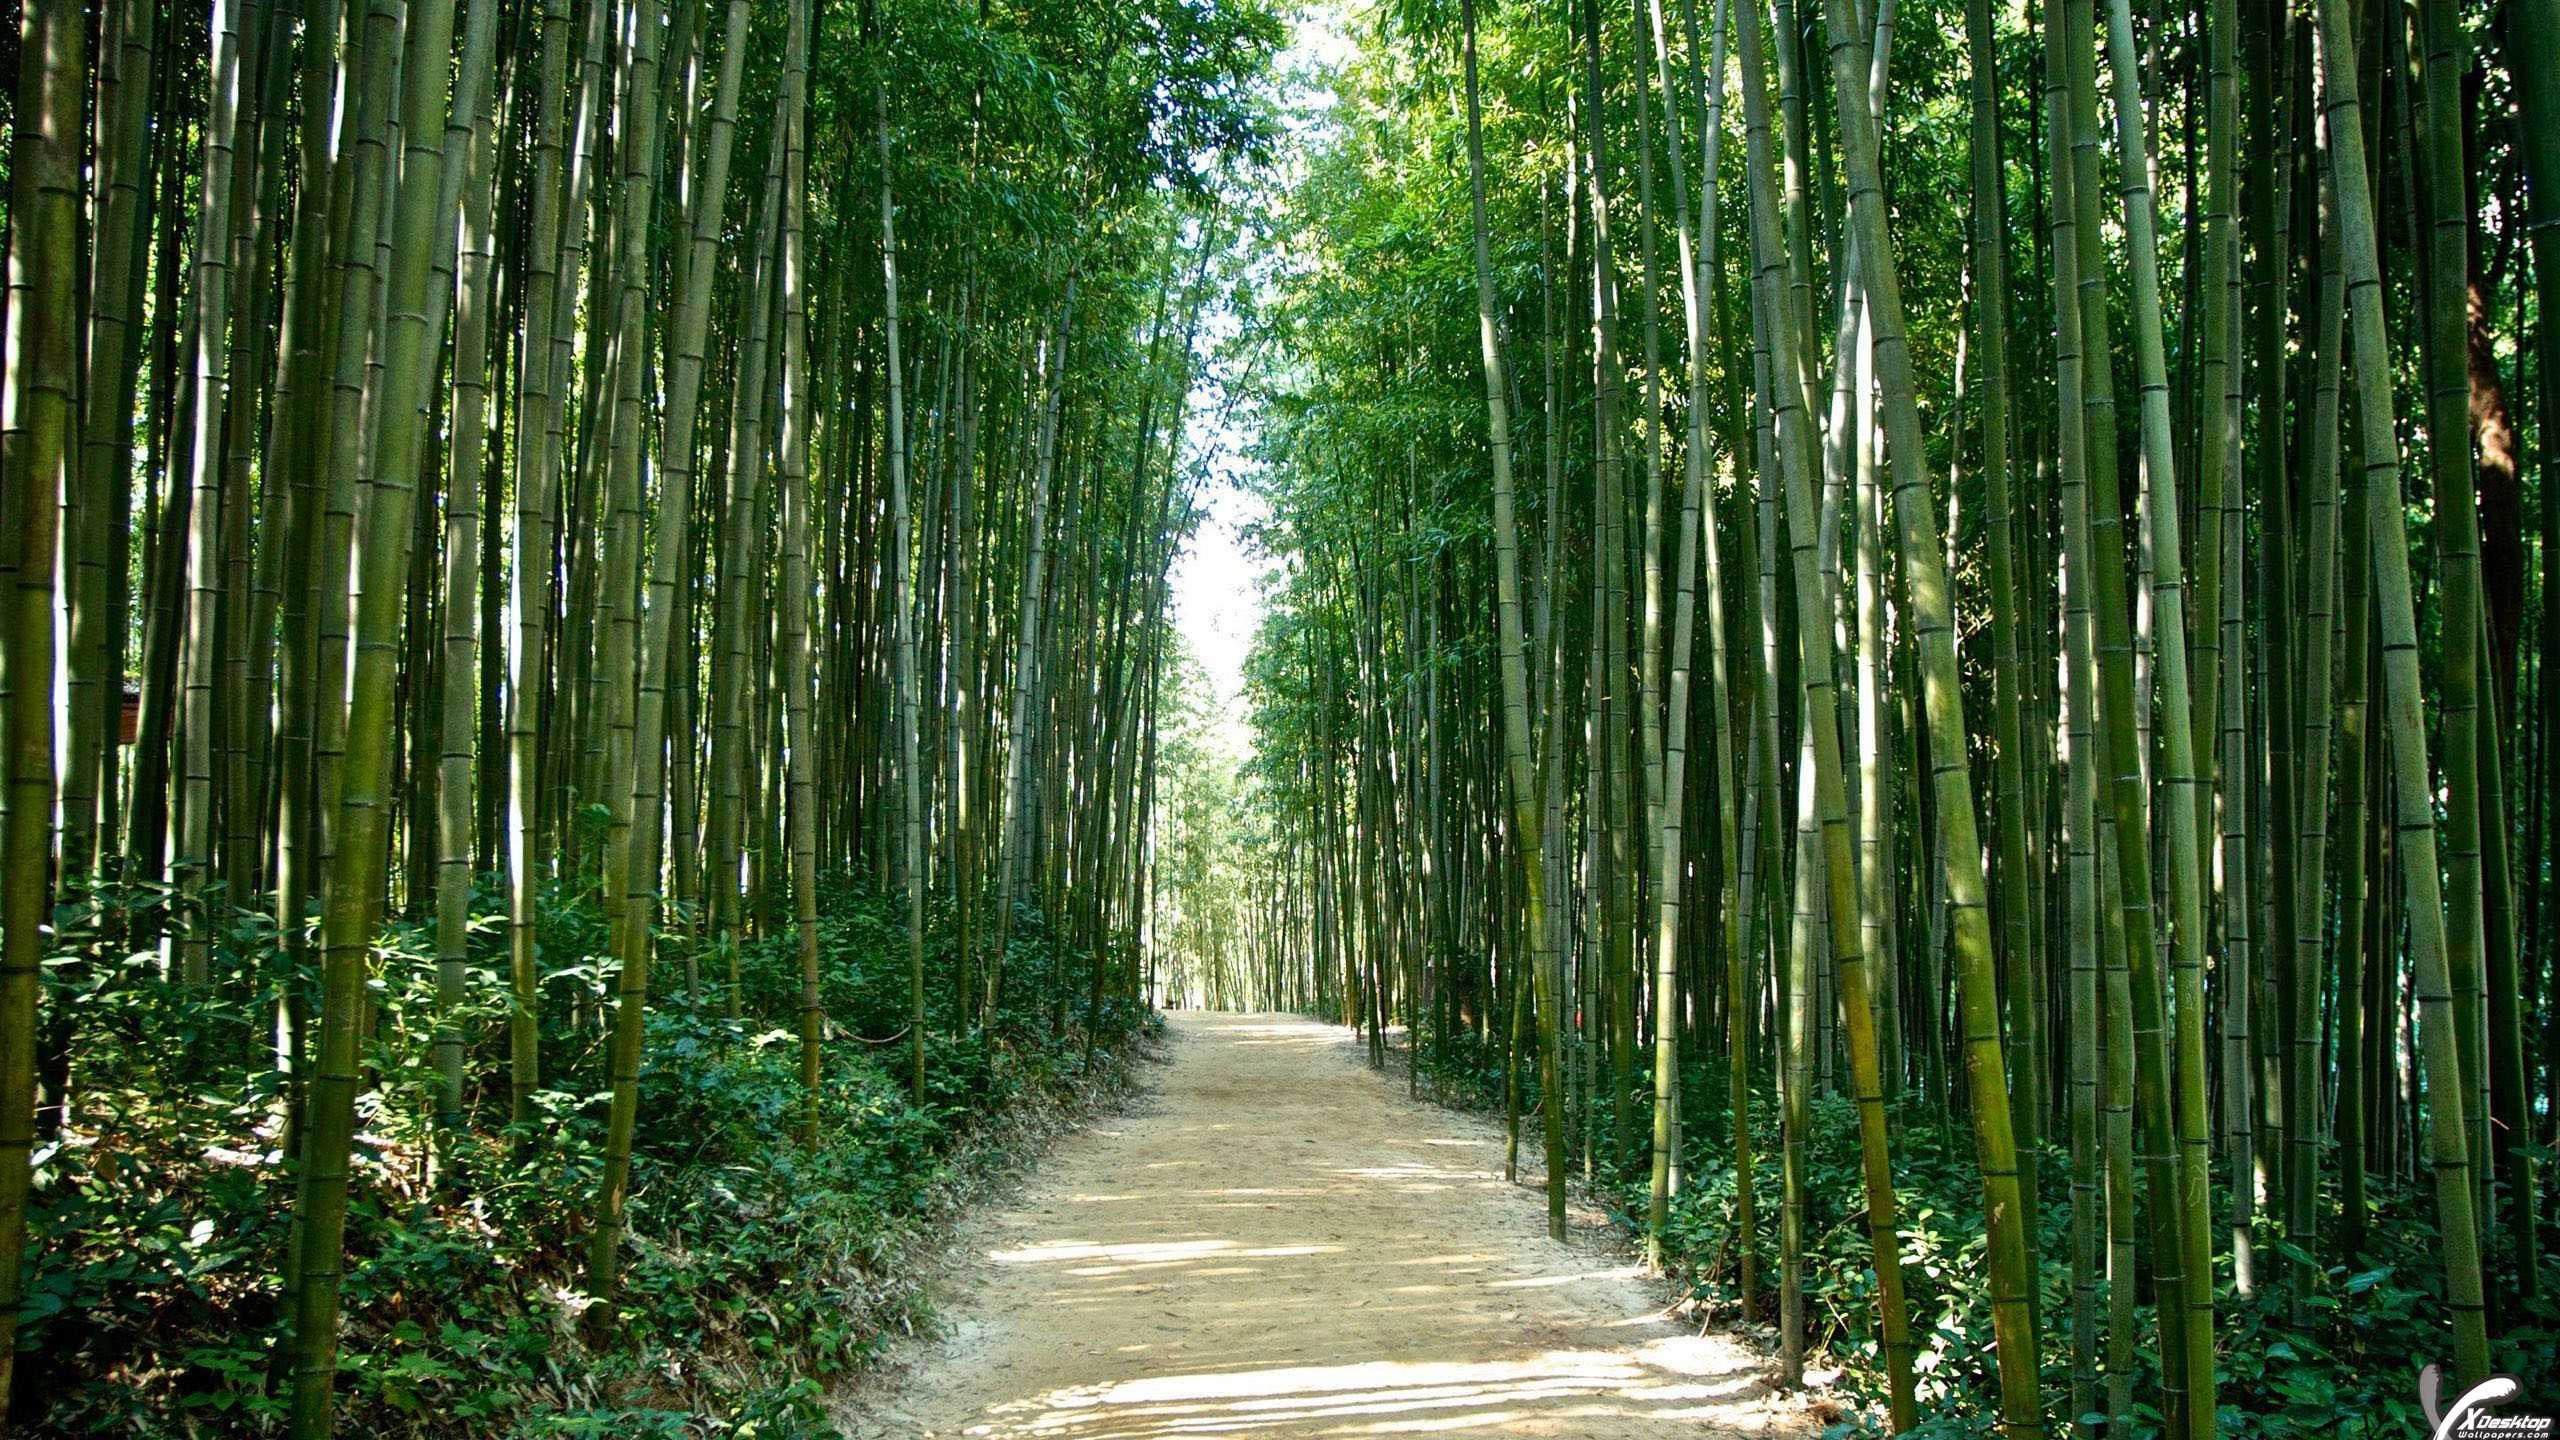 road through a bamboo forest in korea wallpaper